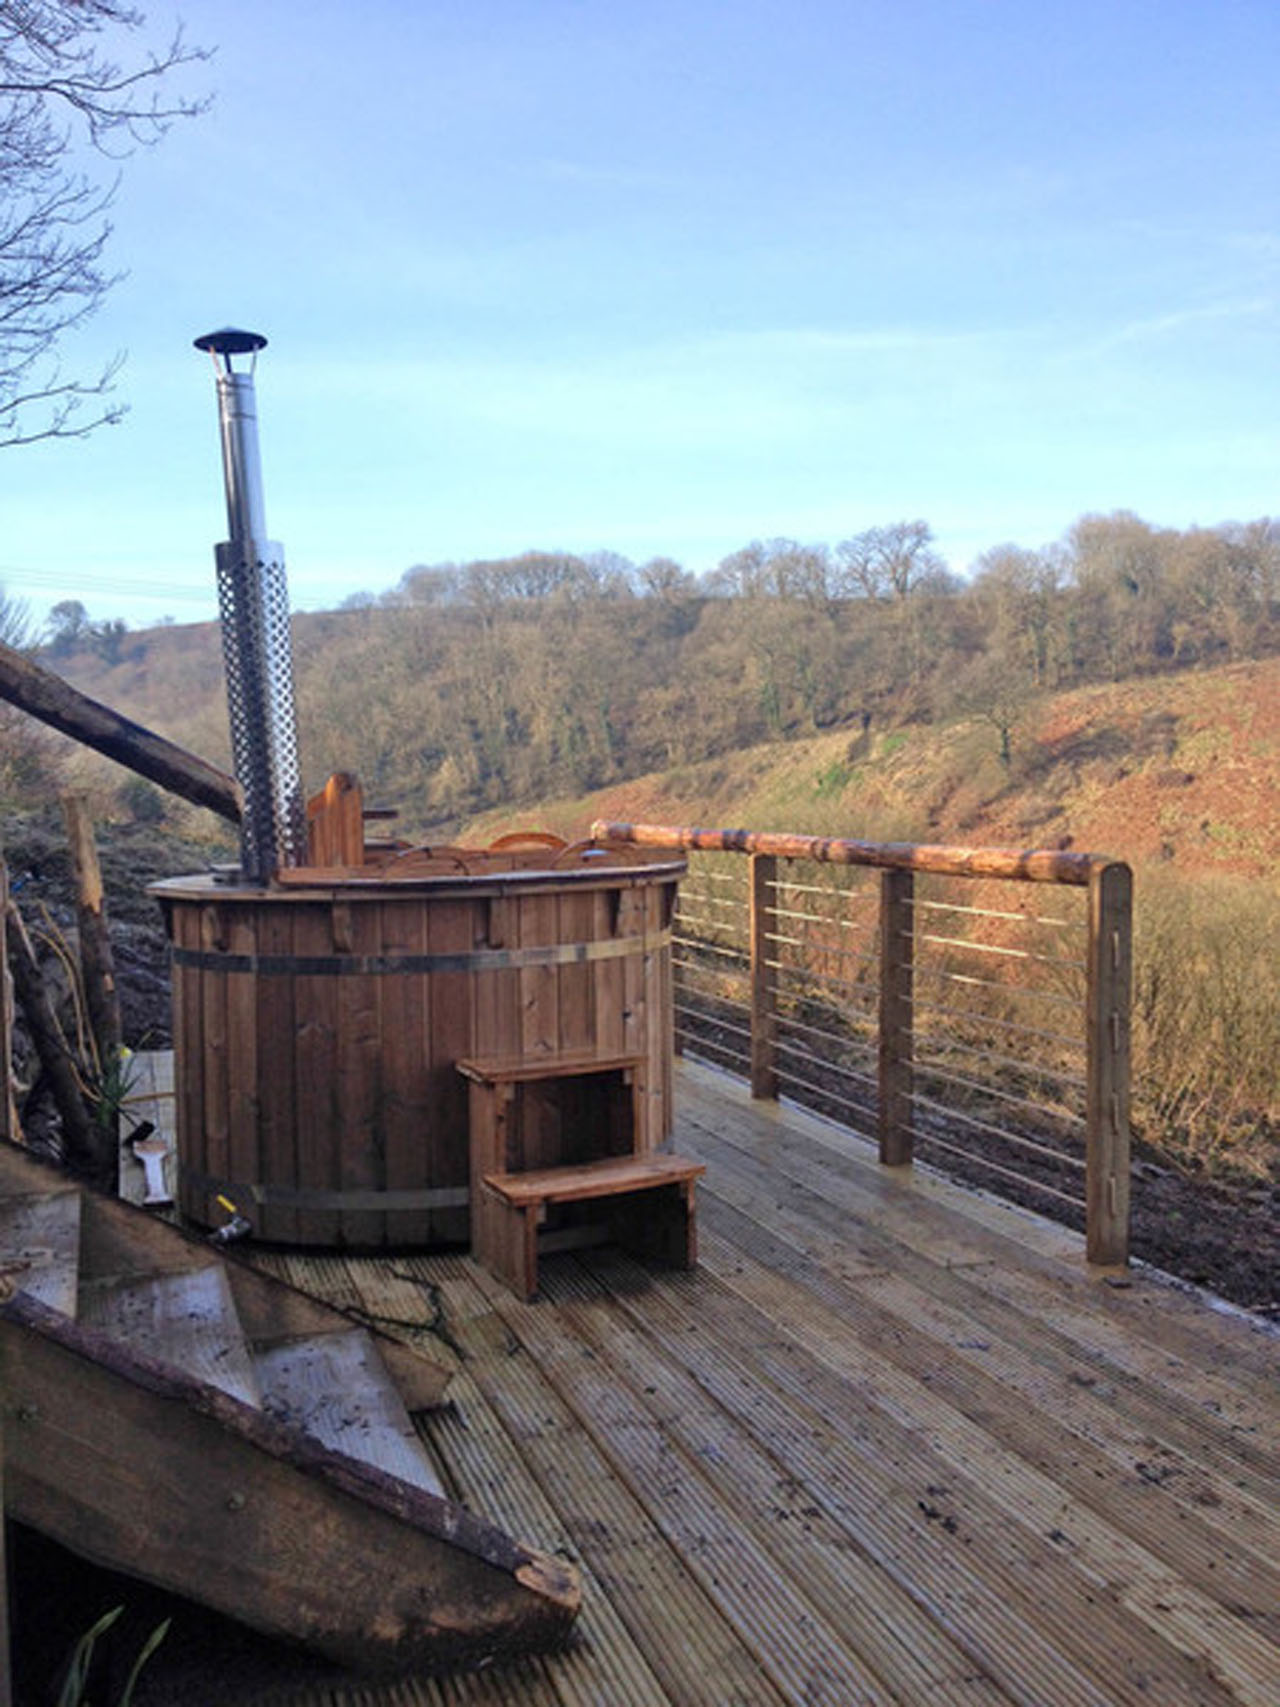 woodfired hot tub sat on wooden decking area in the countryside